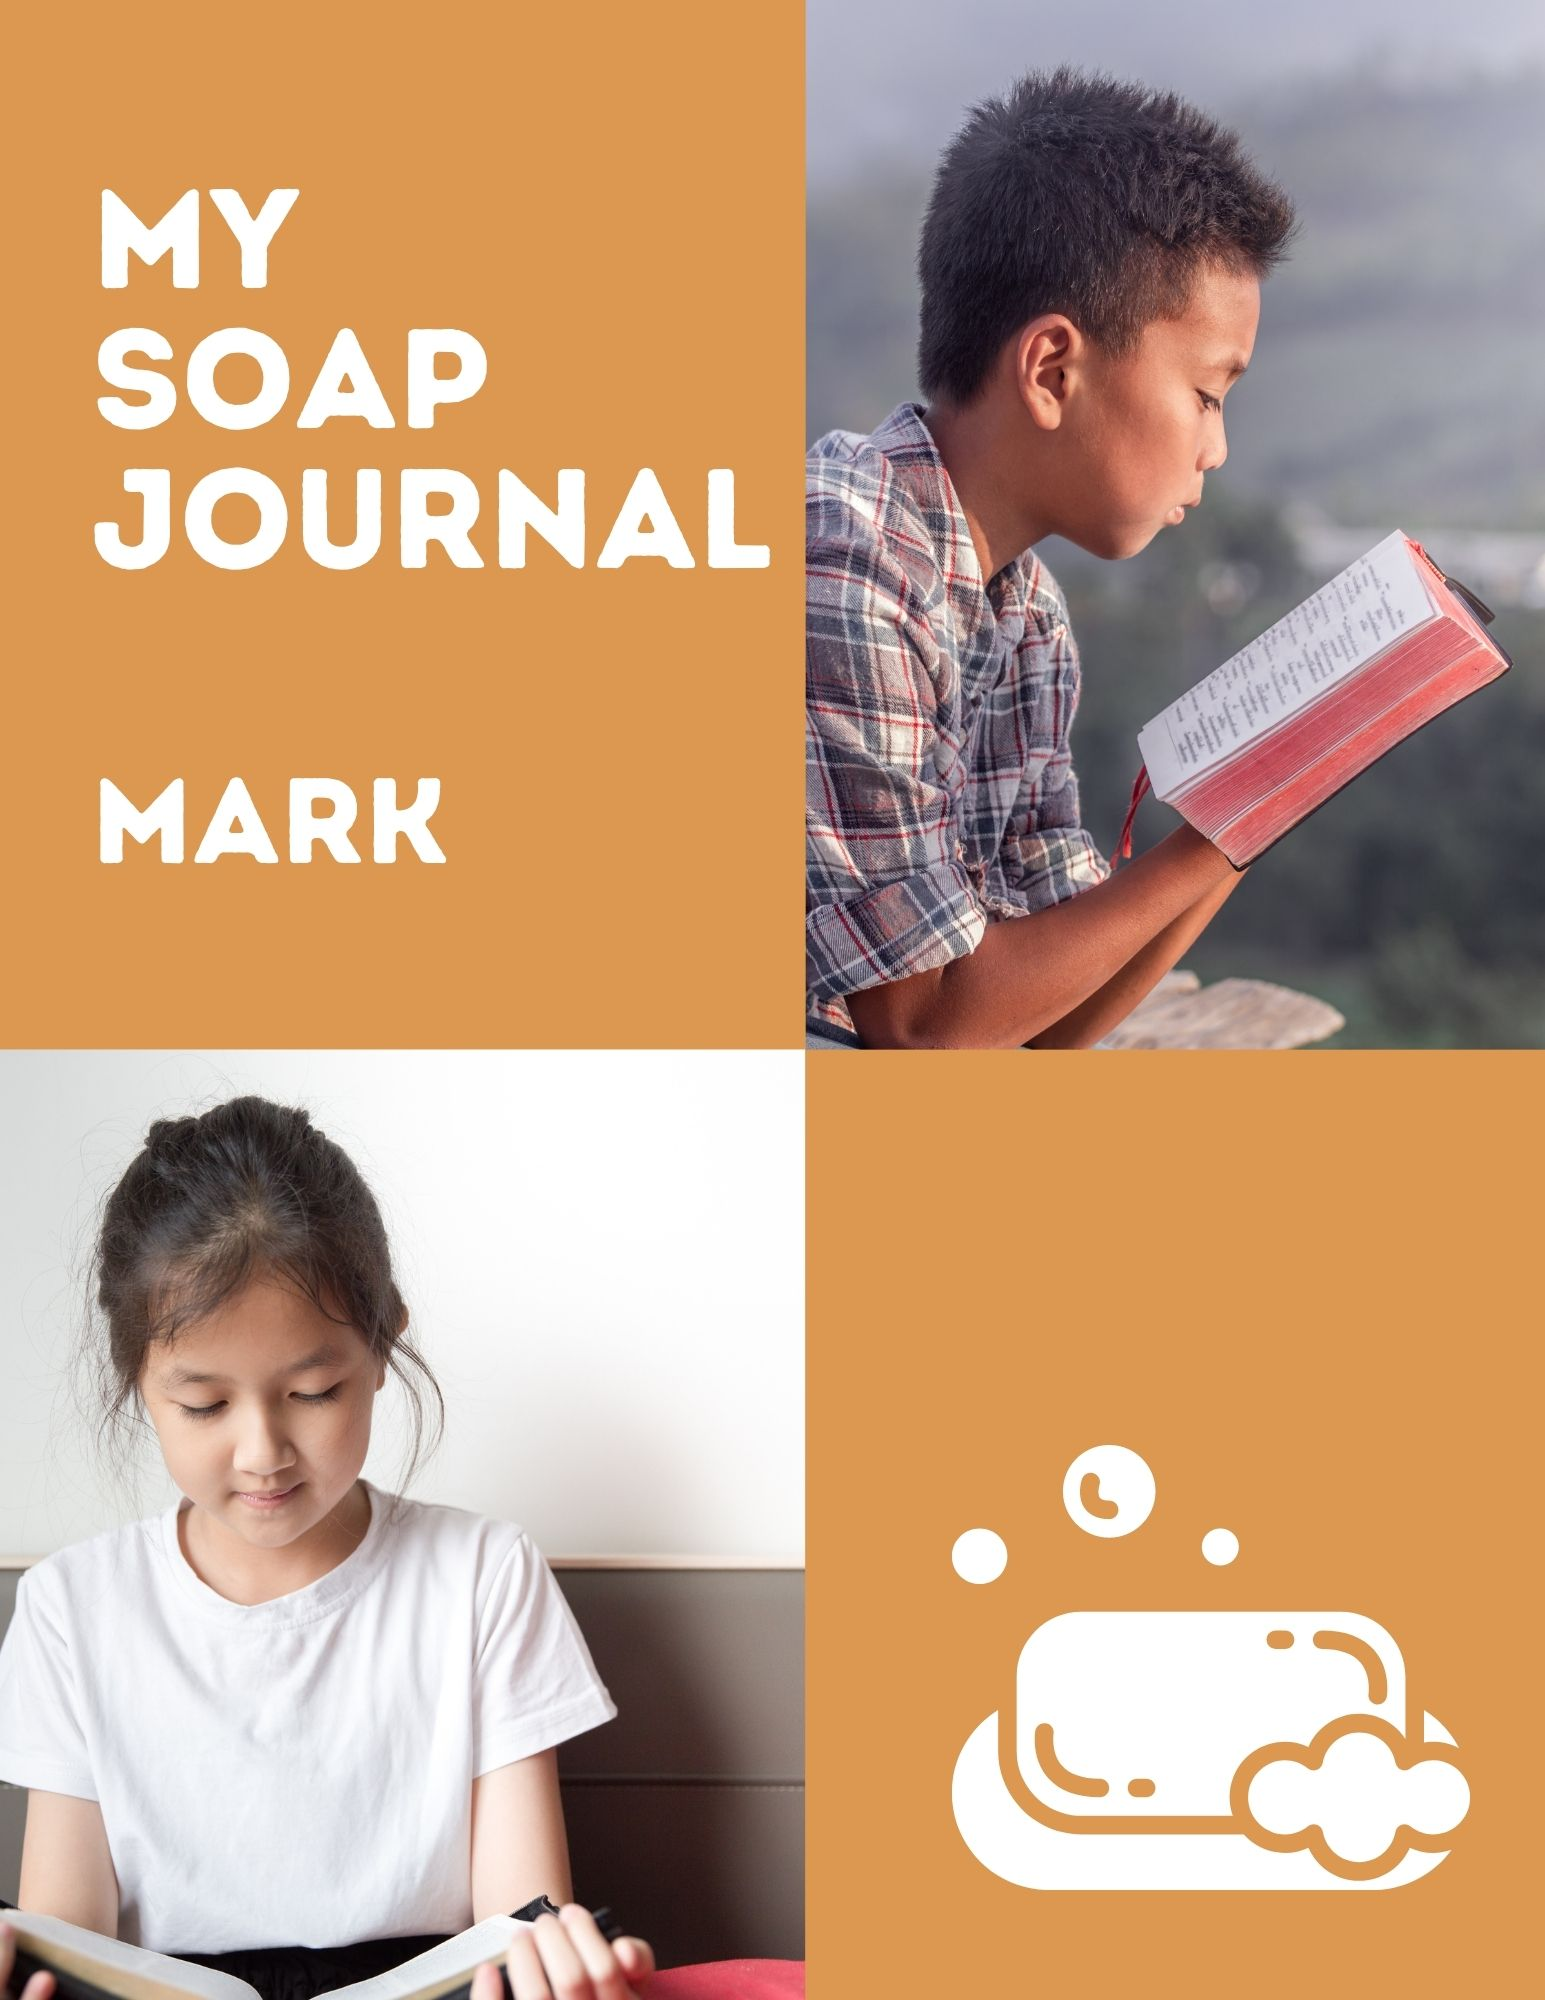 SOAP Journal Acts